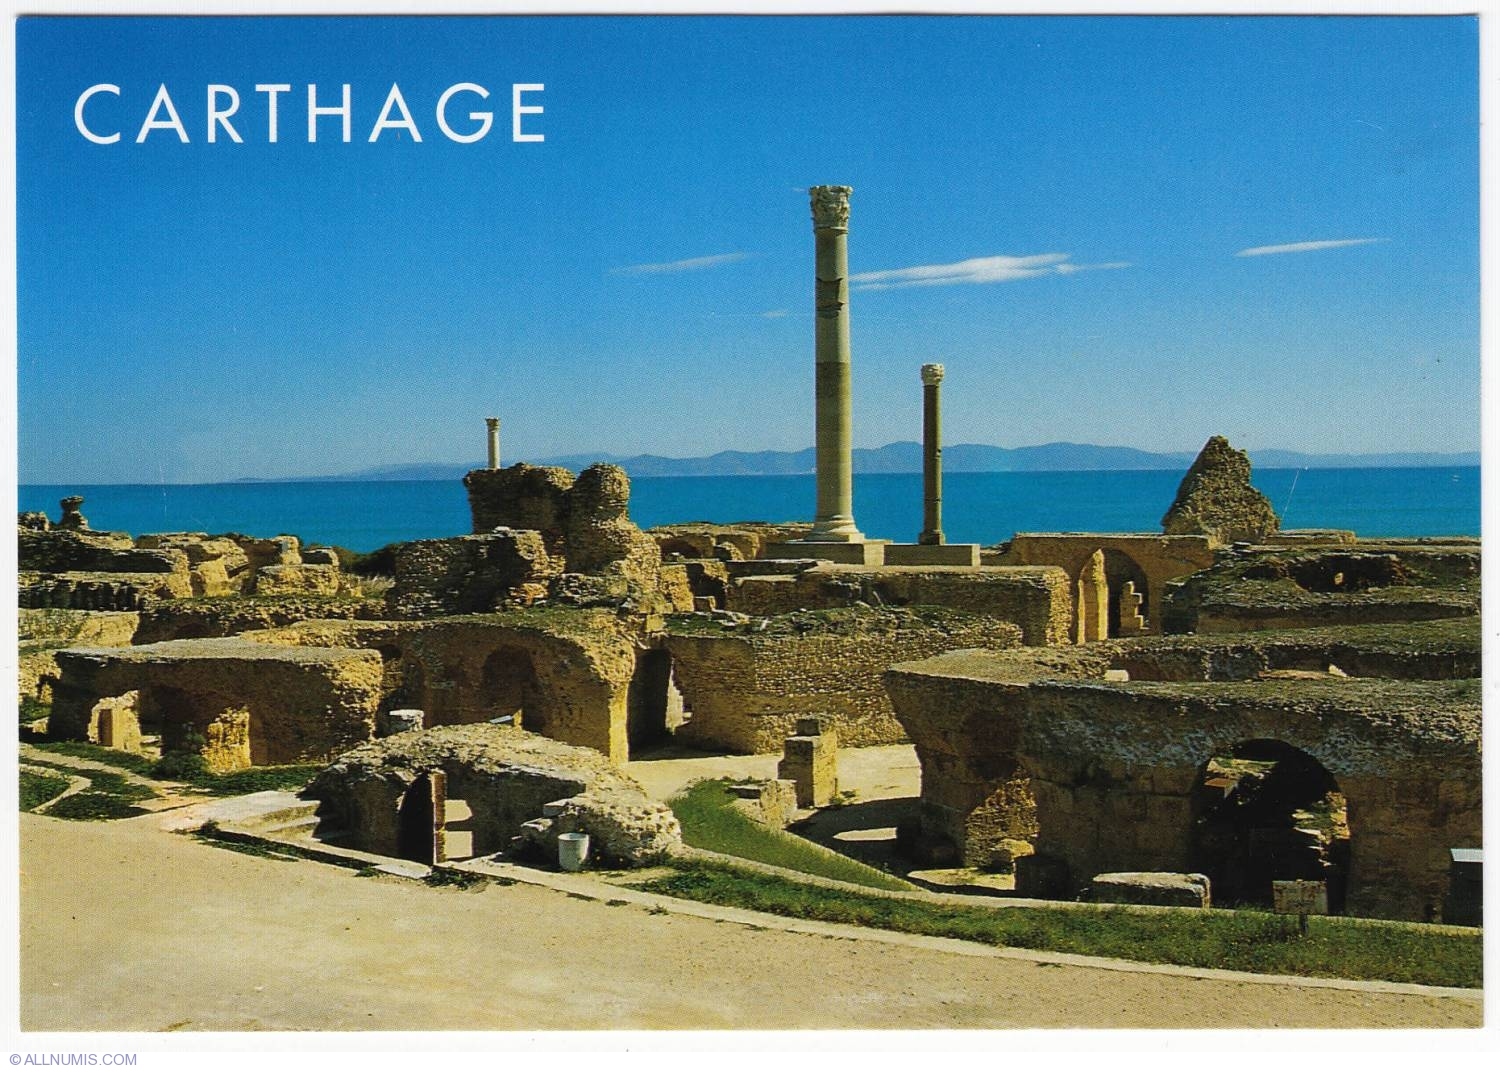 the history of the city of carthage History of carthage including dido's city, colonies and rivals, the punic wars, colonia julia carthago, vandals in carthage, the last years.